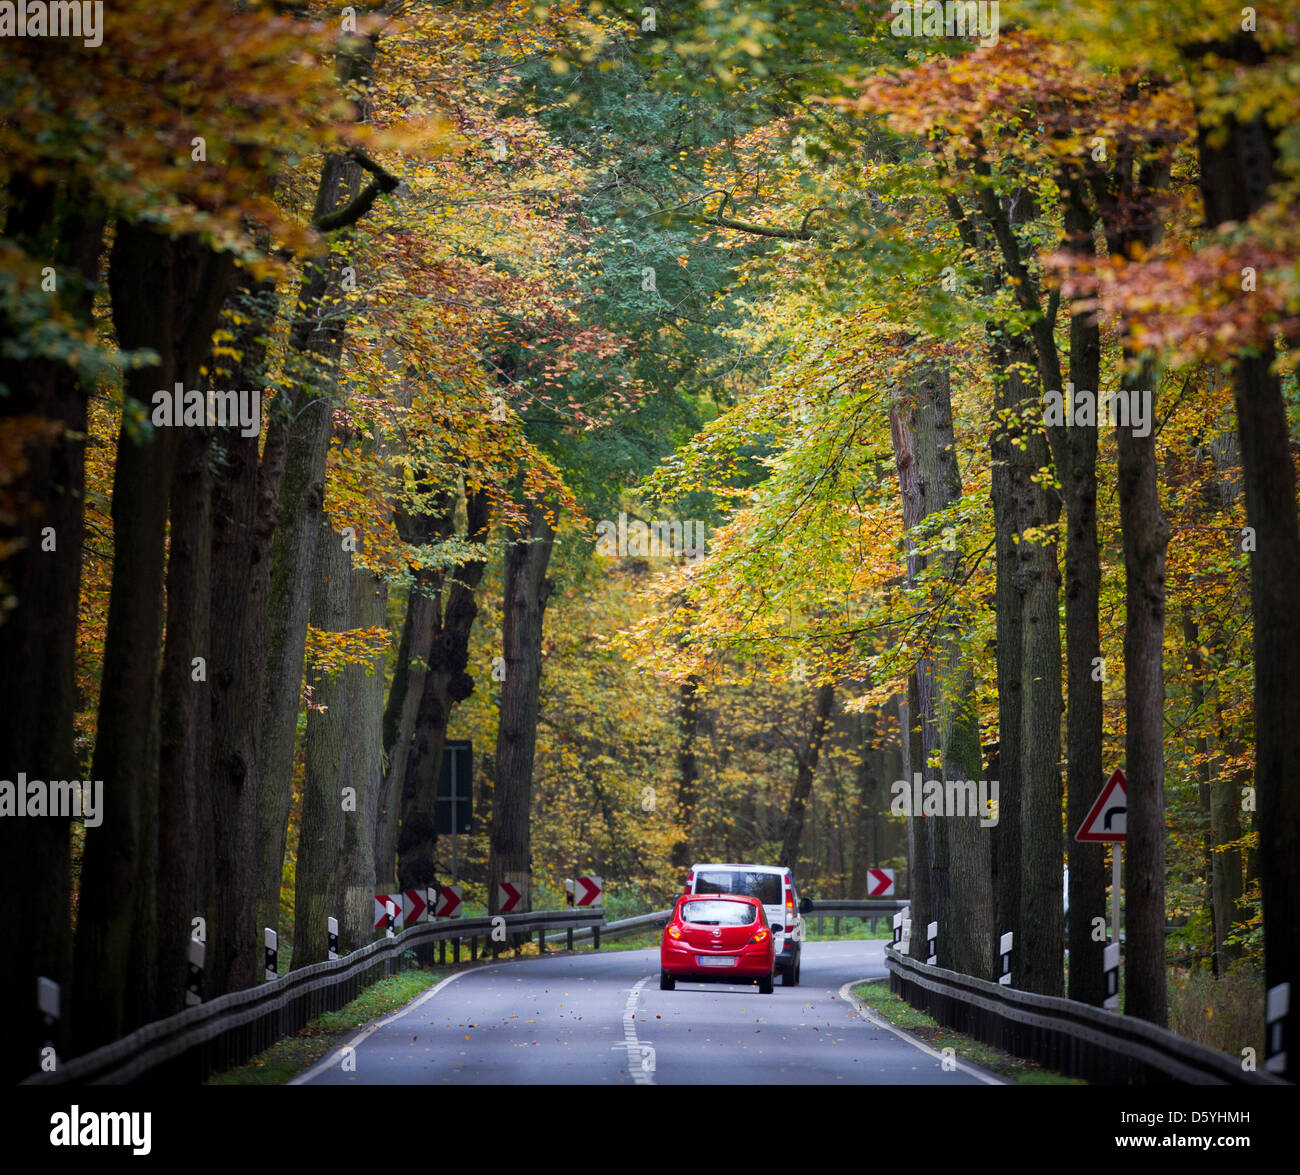 A car drives through an autumn forest in Templin, Germany, 25 October 2012. Photto: Patrick Pleul - Stock Image